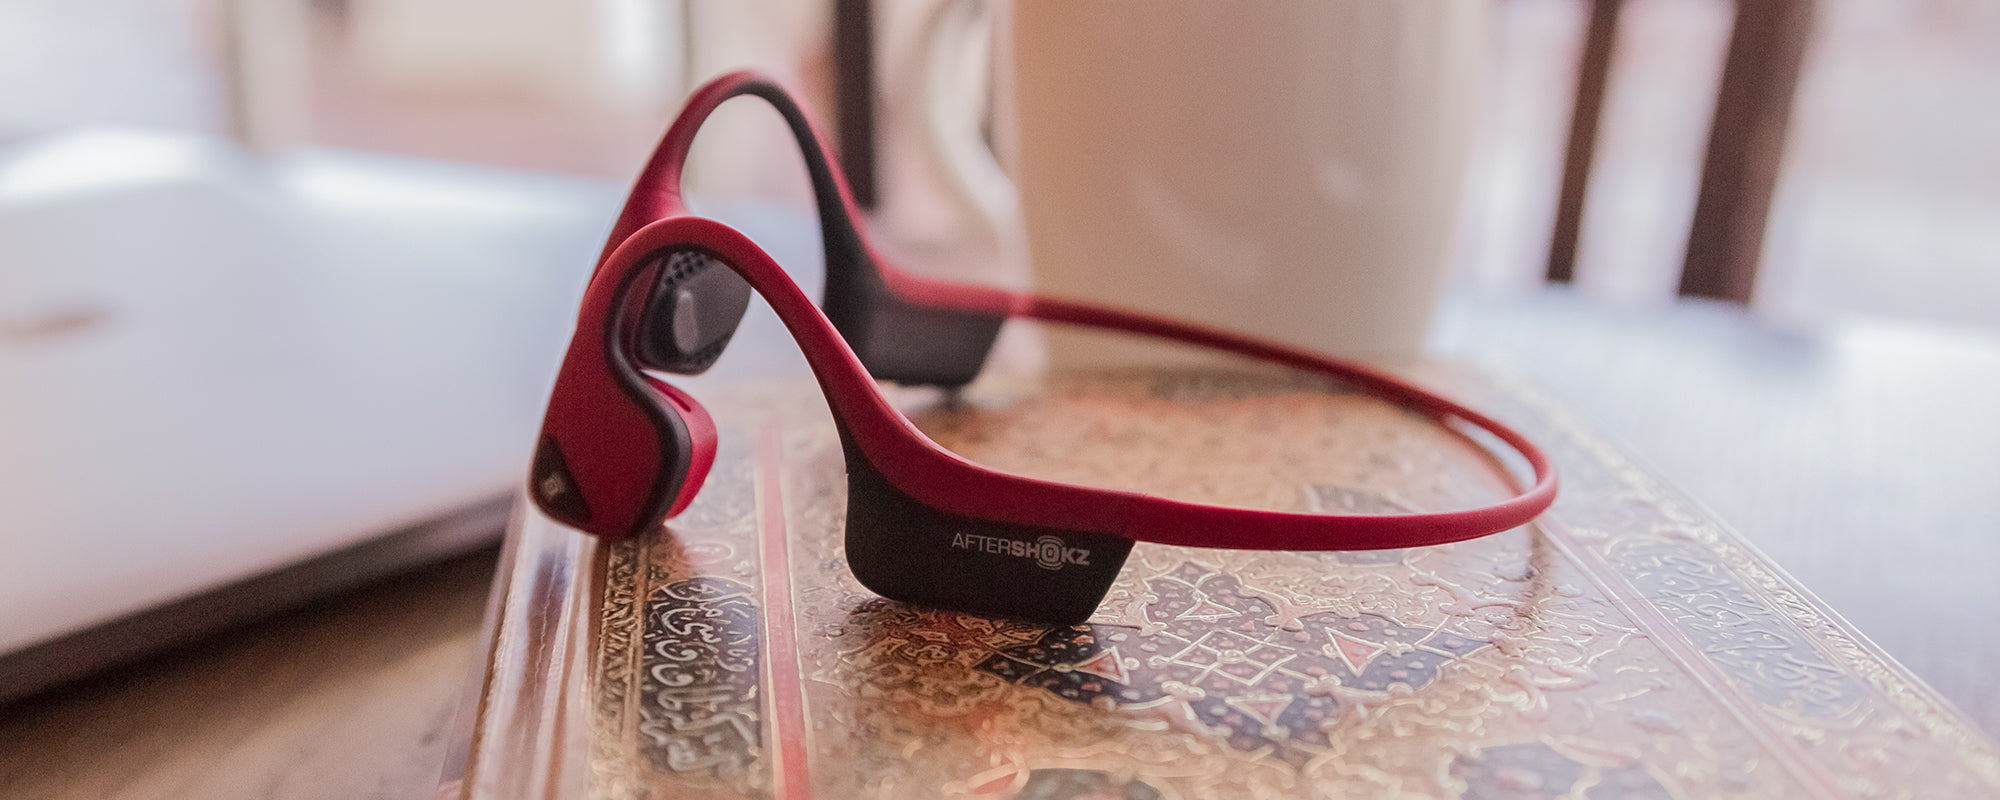 How AfterShokz Can Help You Work From Home